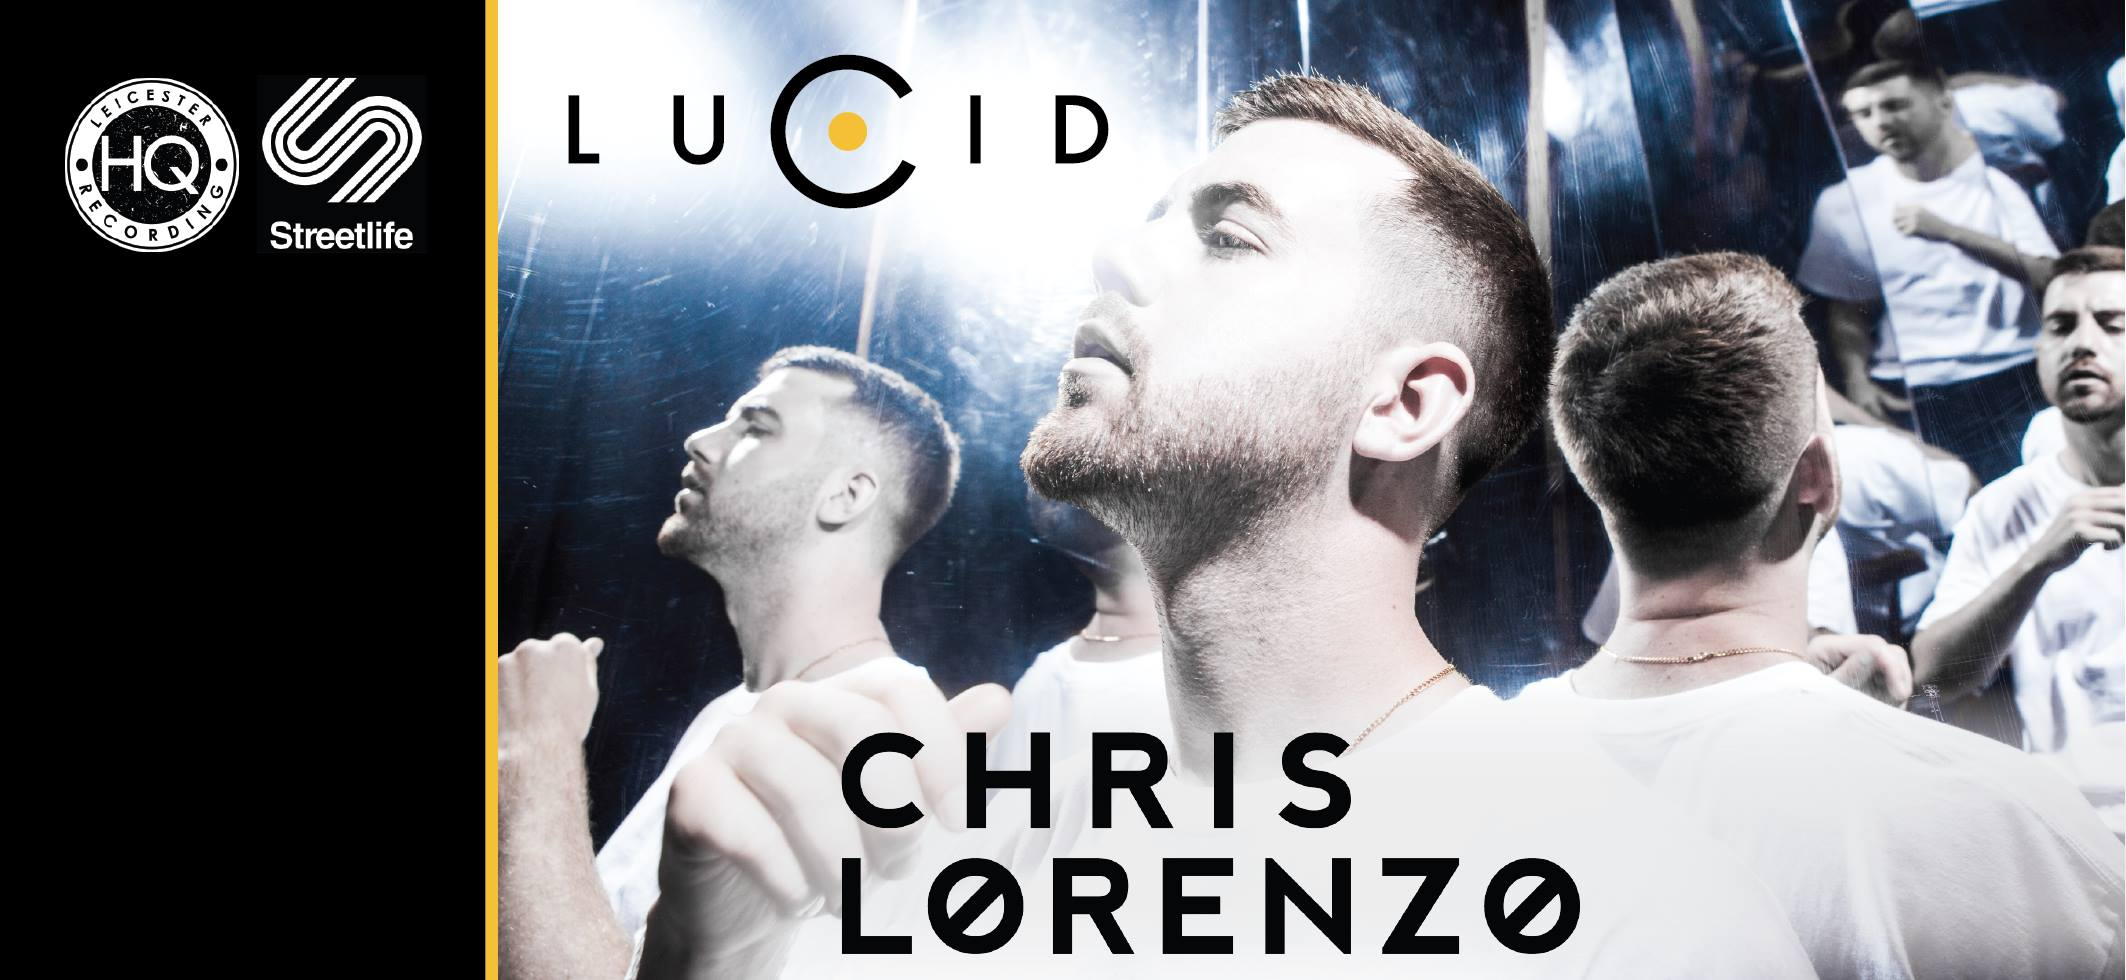 Chris Lorenzo set to headline Leicester's Streetlife in March